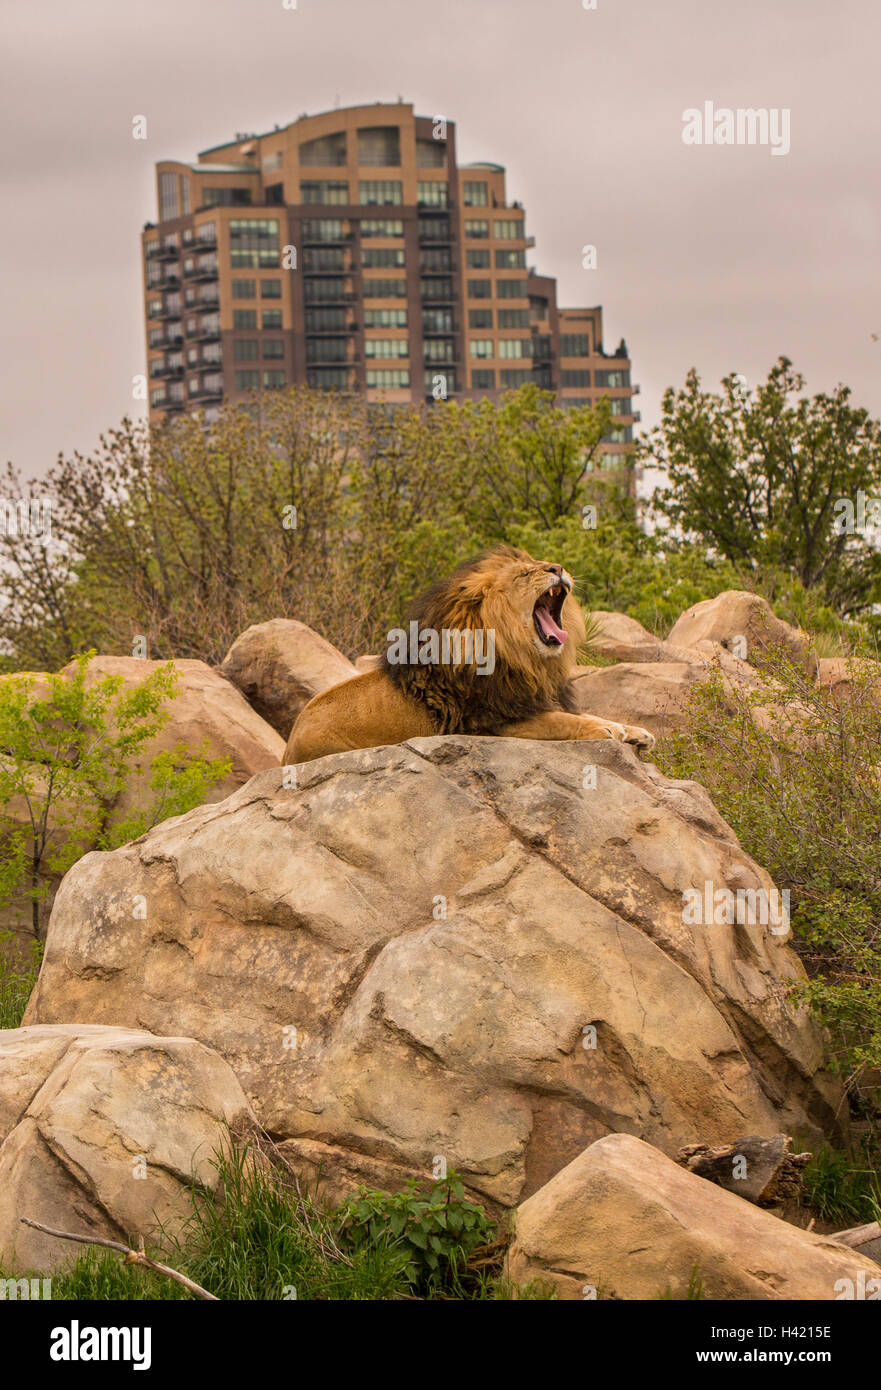 A Lion's Roar Close To The City - Stock Image